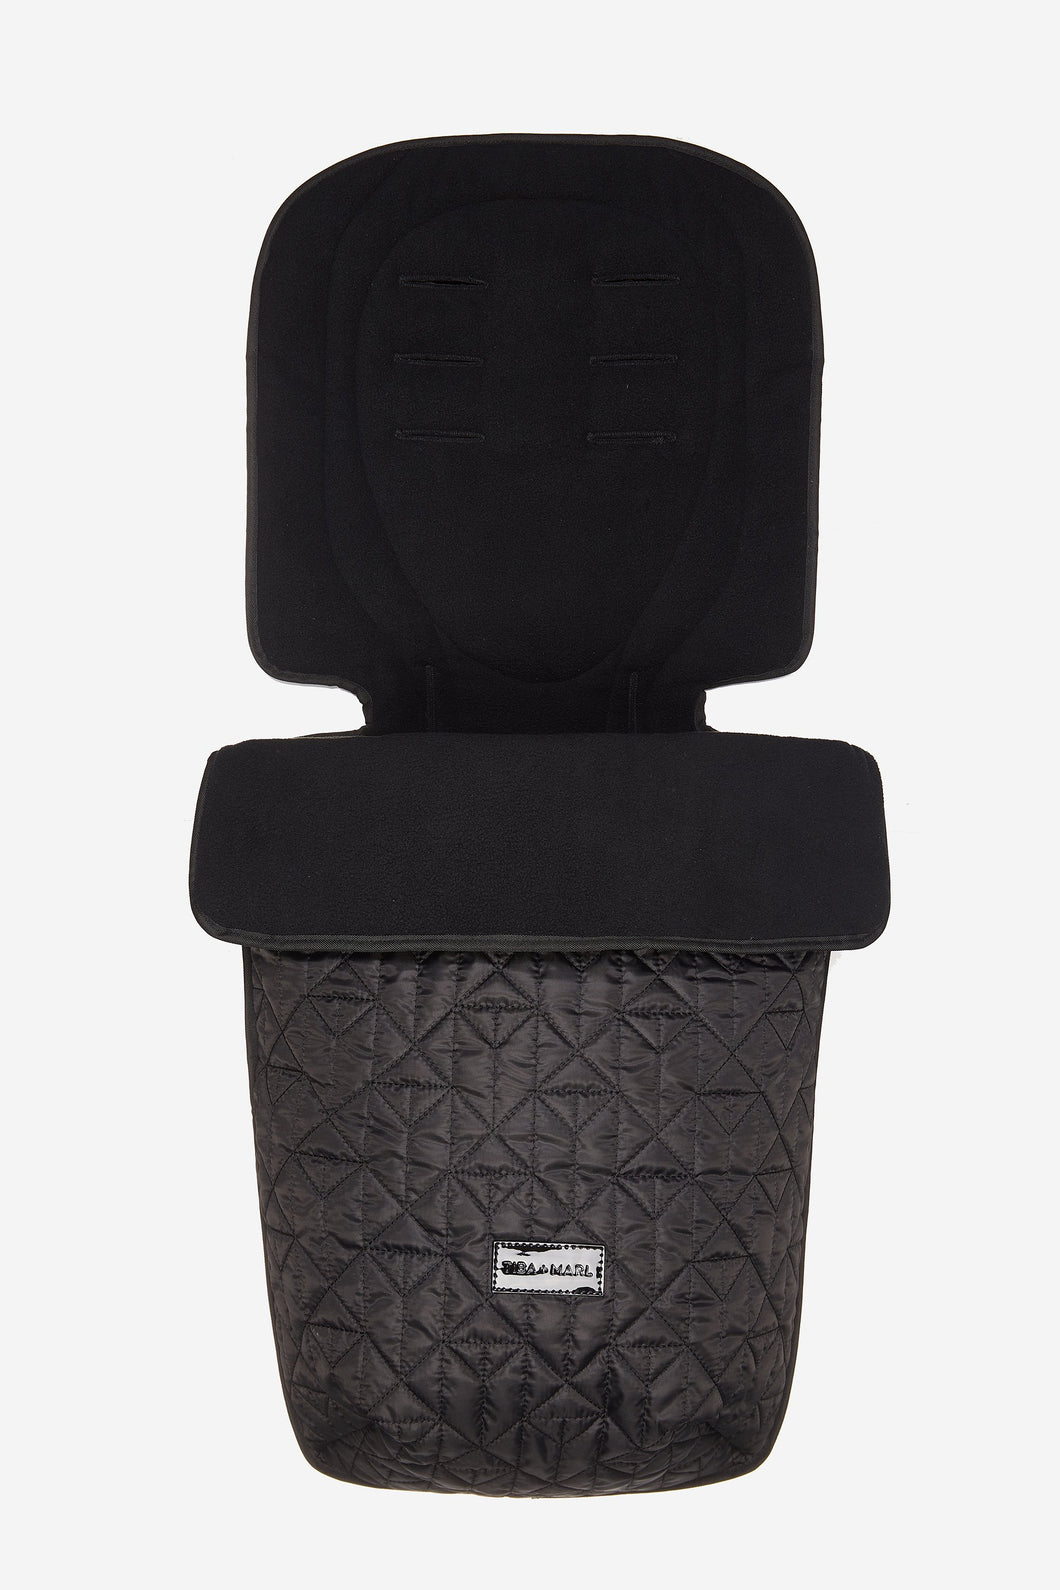 Binibamba footmuff in black quilted design